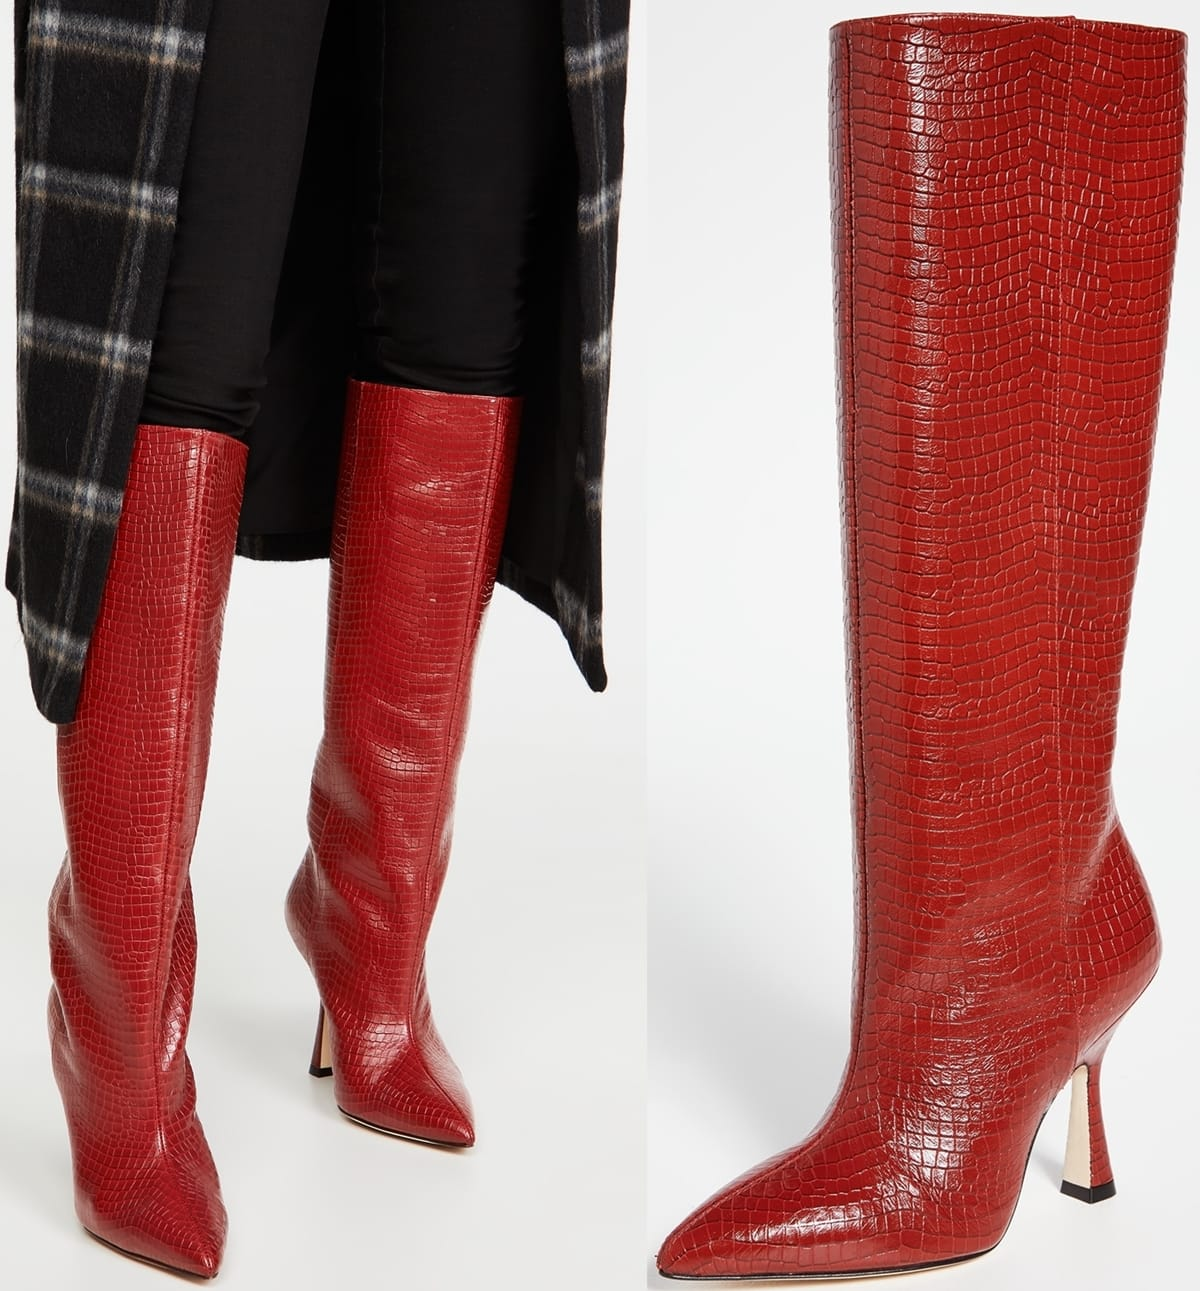 Red Patron knee-high boots from Stuart Weitzman made from croc-effect leather